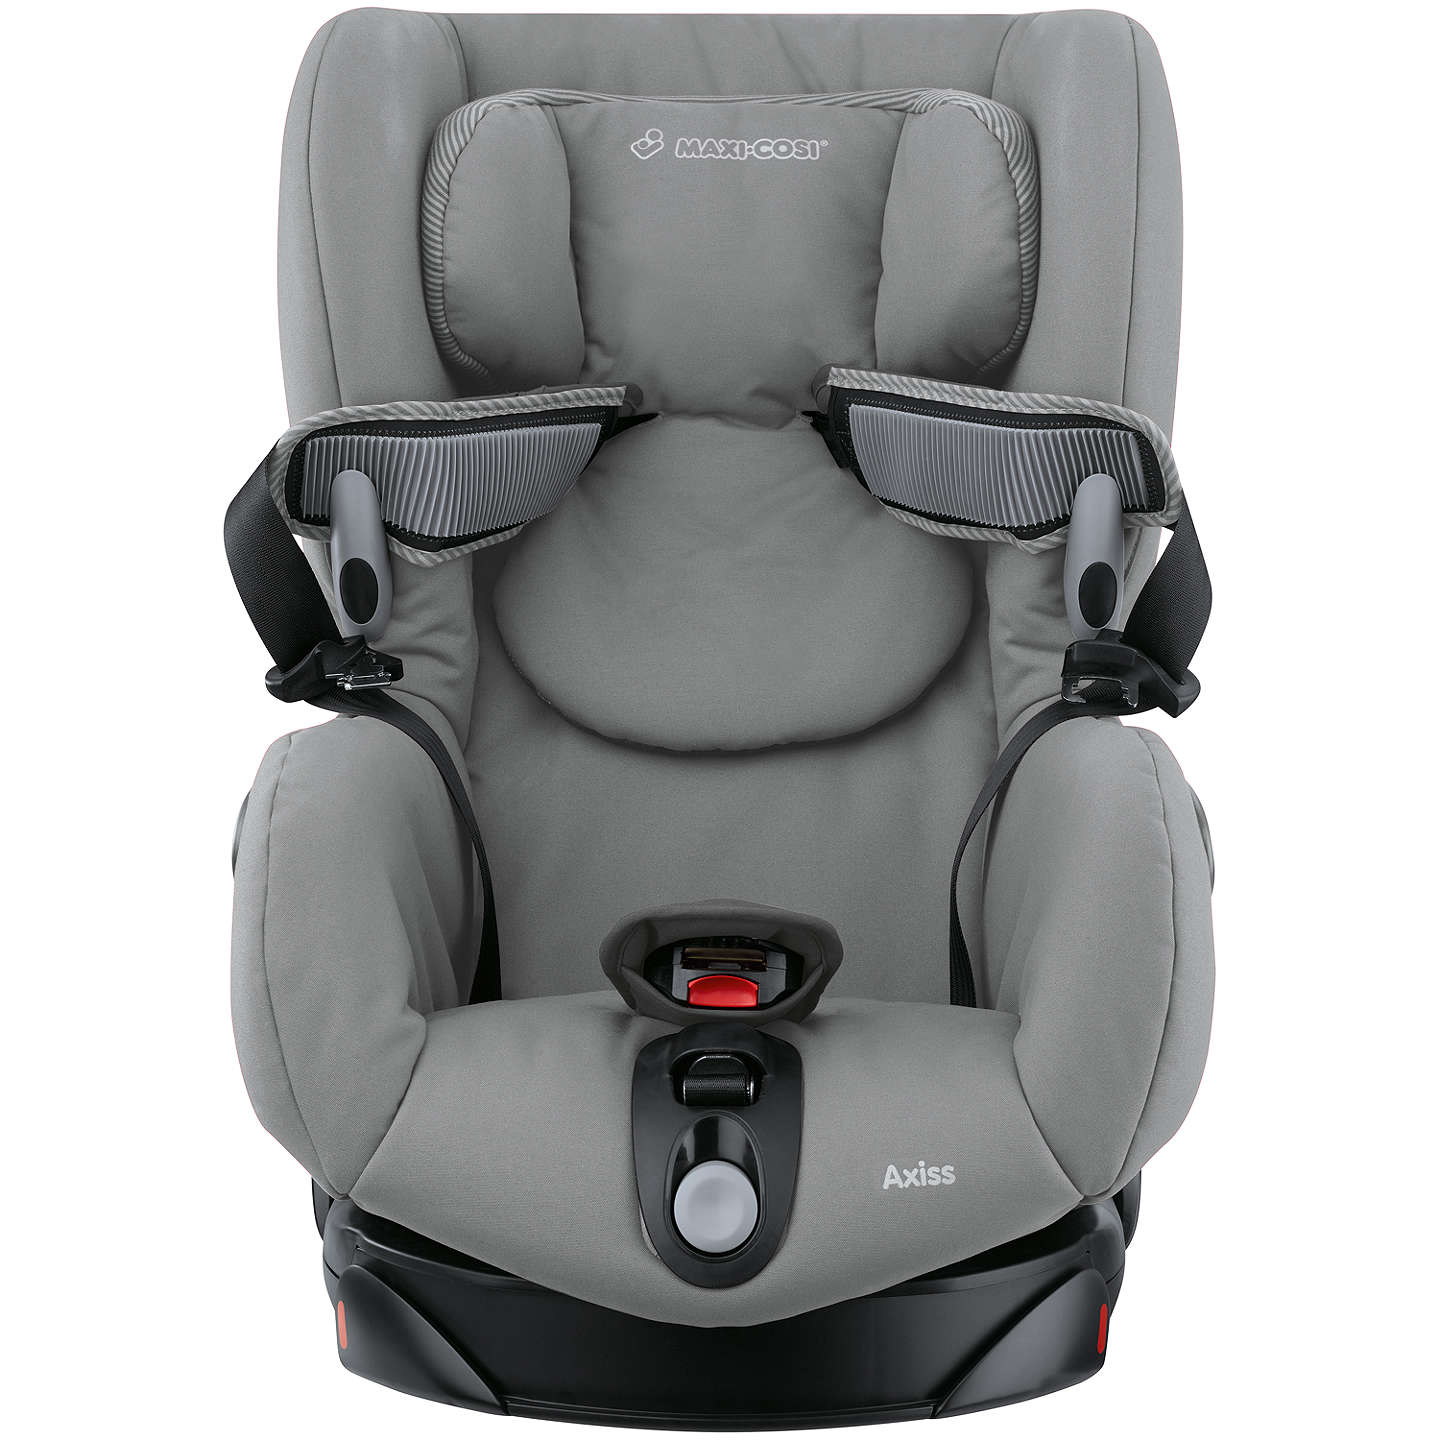 BuyMaxi-Cosi Axiss Group 1 Car Seat, Concrete Grey Online at johnlewis.com